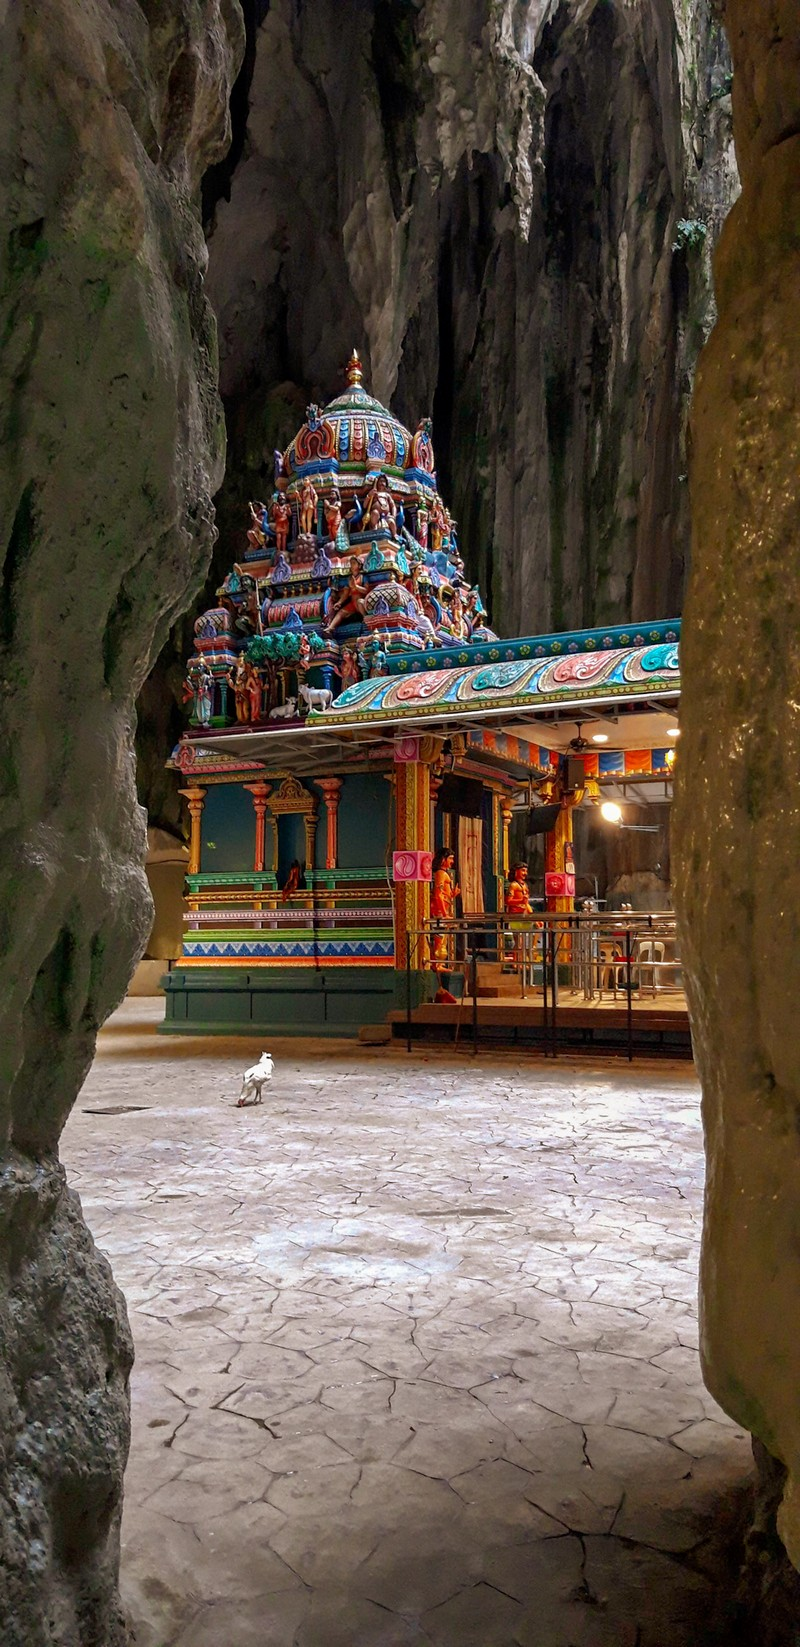 Batu Caves Malaysia are one of the biggest attractions in Kuala Lumpur, which are home to several Hindu temples. This place is totally worth a visit.